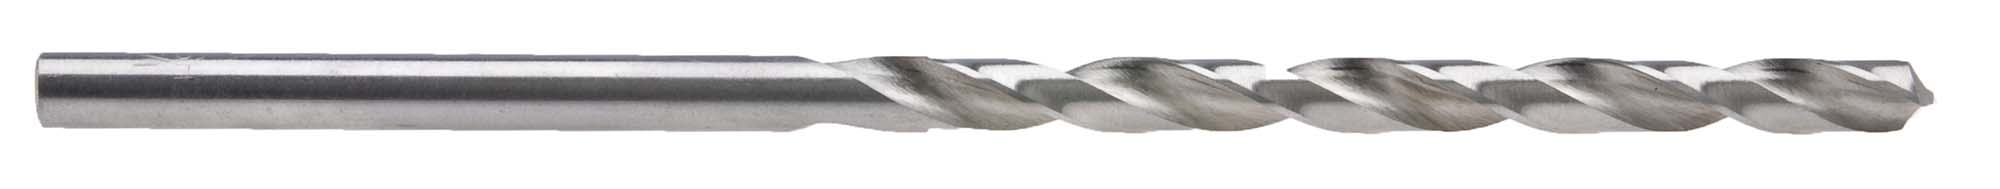 "Z (.413"") ""Taper Length"" Long Straight Shank Drill Bit, High Speed Steel"